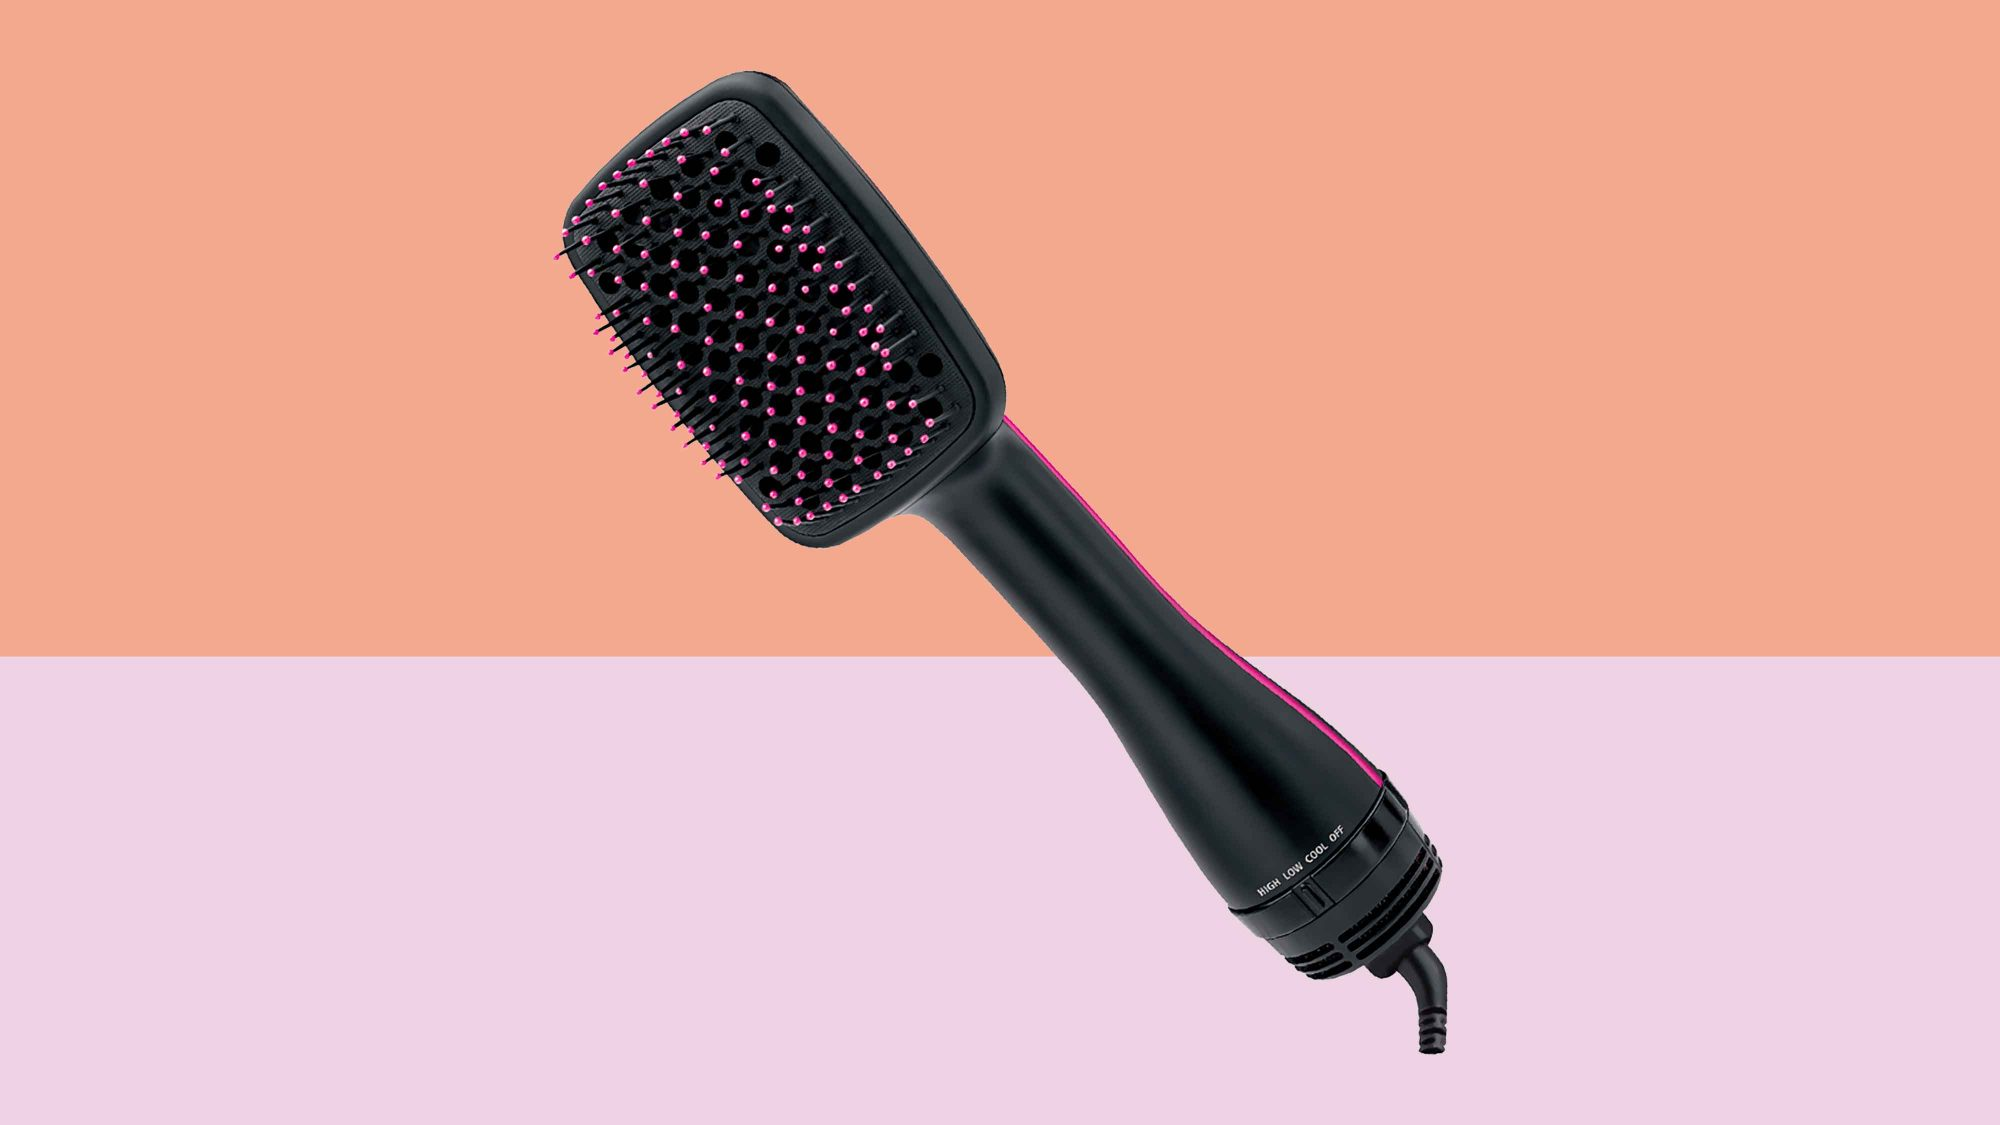 This Genius Beauty Tool Can Dry and Straighten Your Hair in Half the